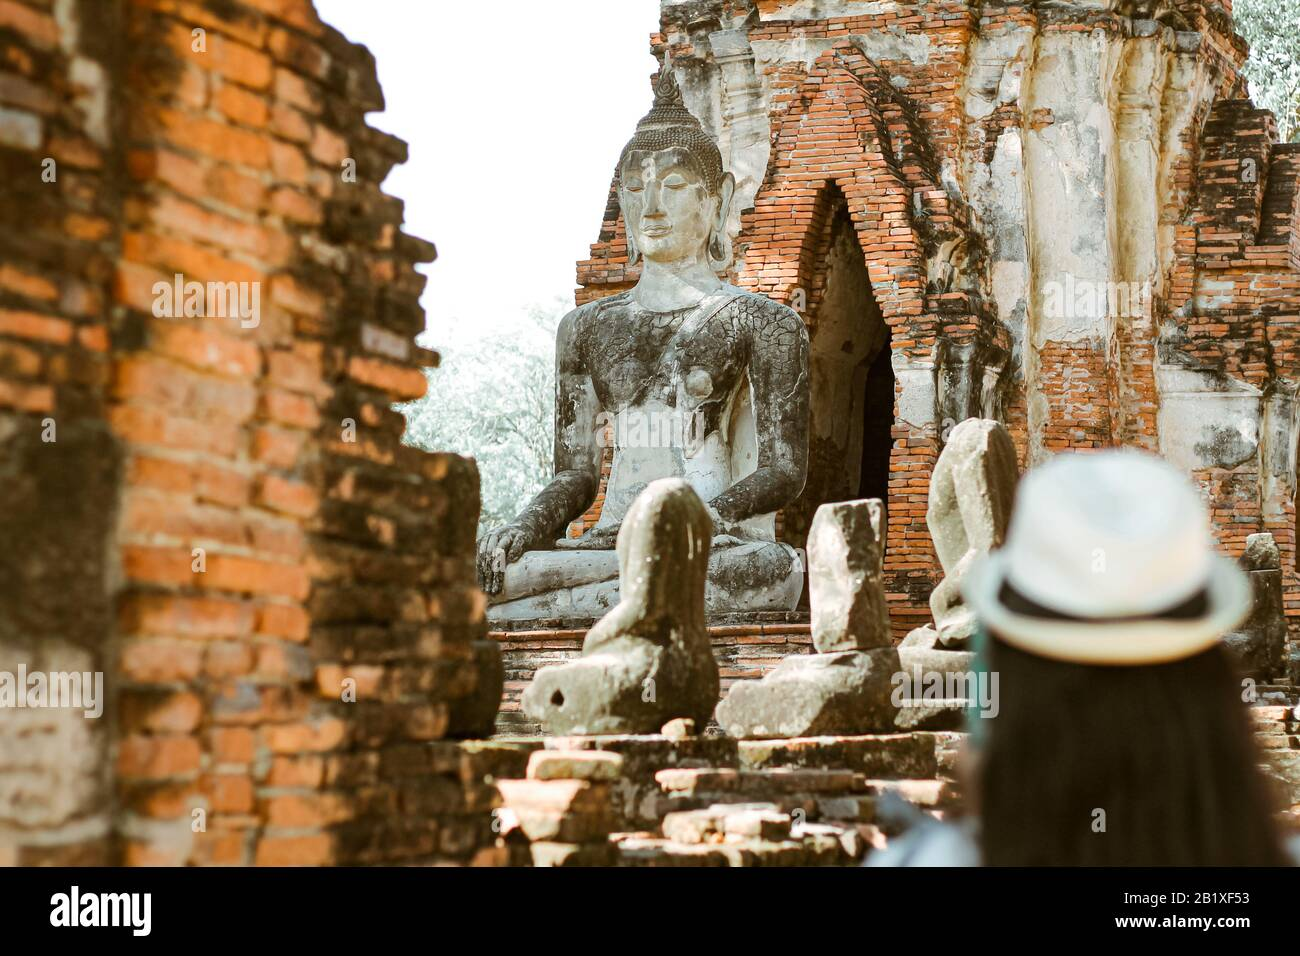 A tourist exploring Ayutthaya Historical Park (focus on the background) which is one of the famous cultural travel destination in Thailand Stock Photo